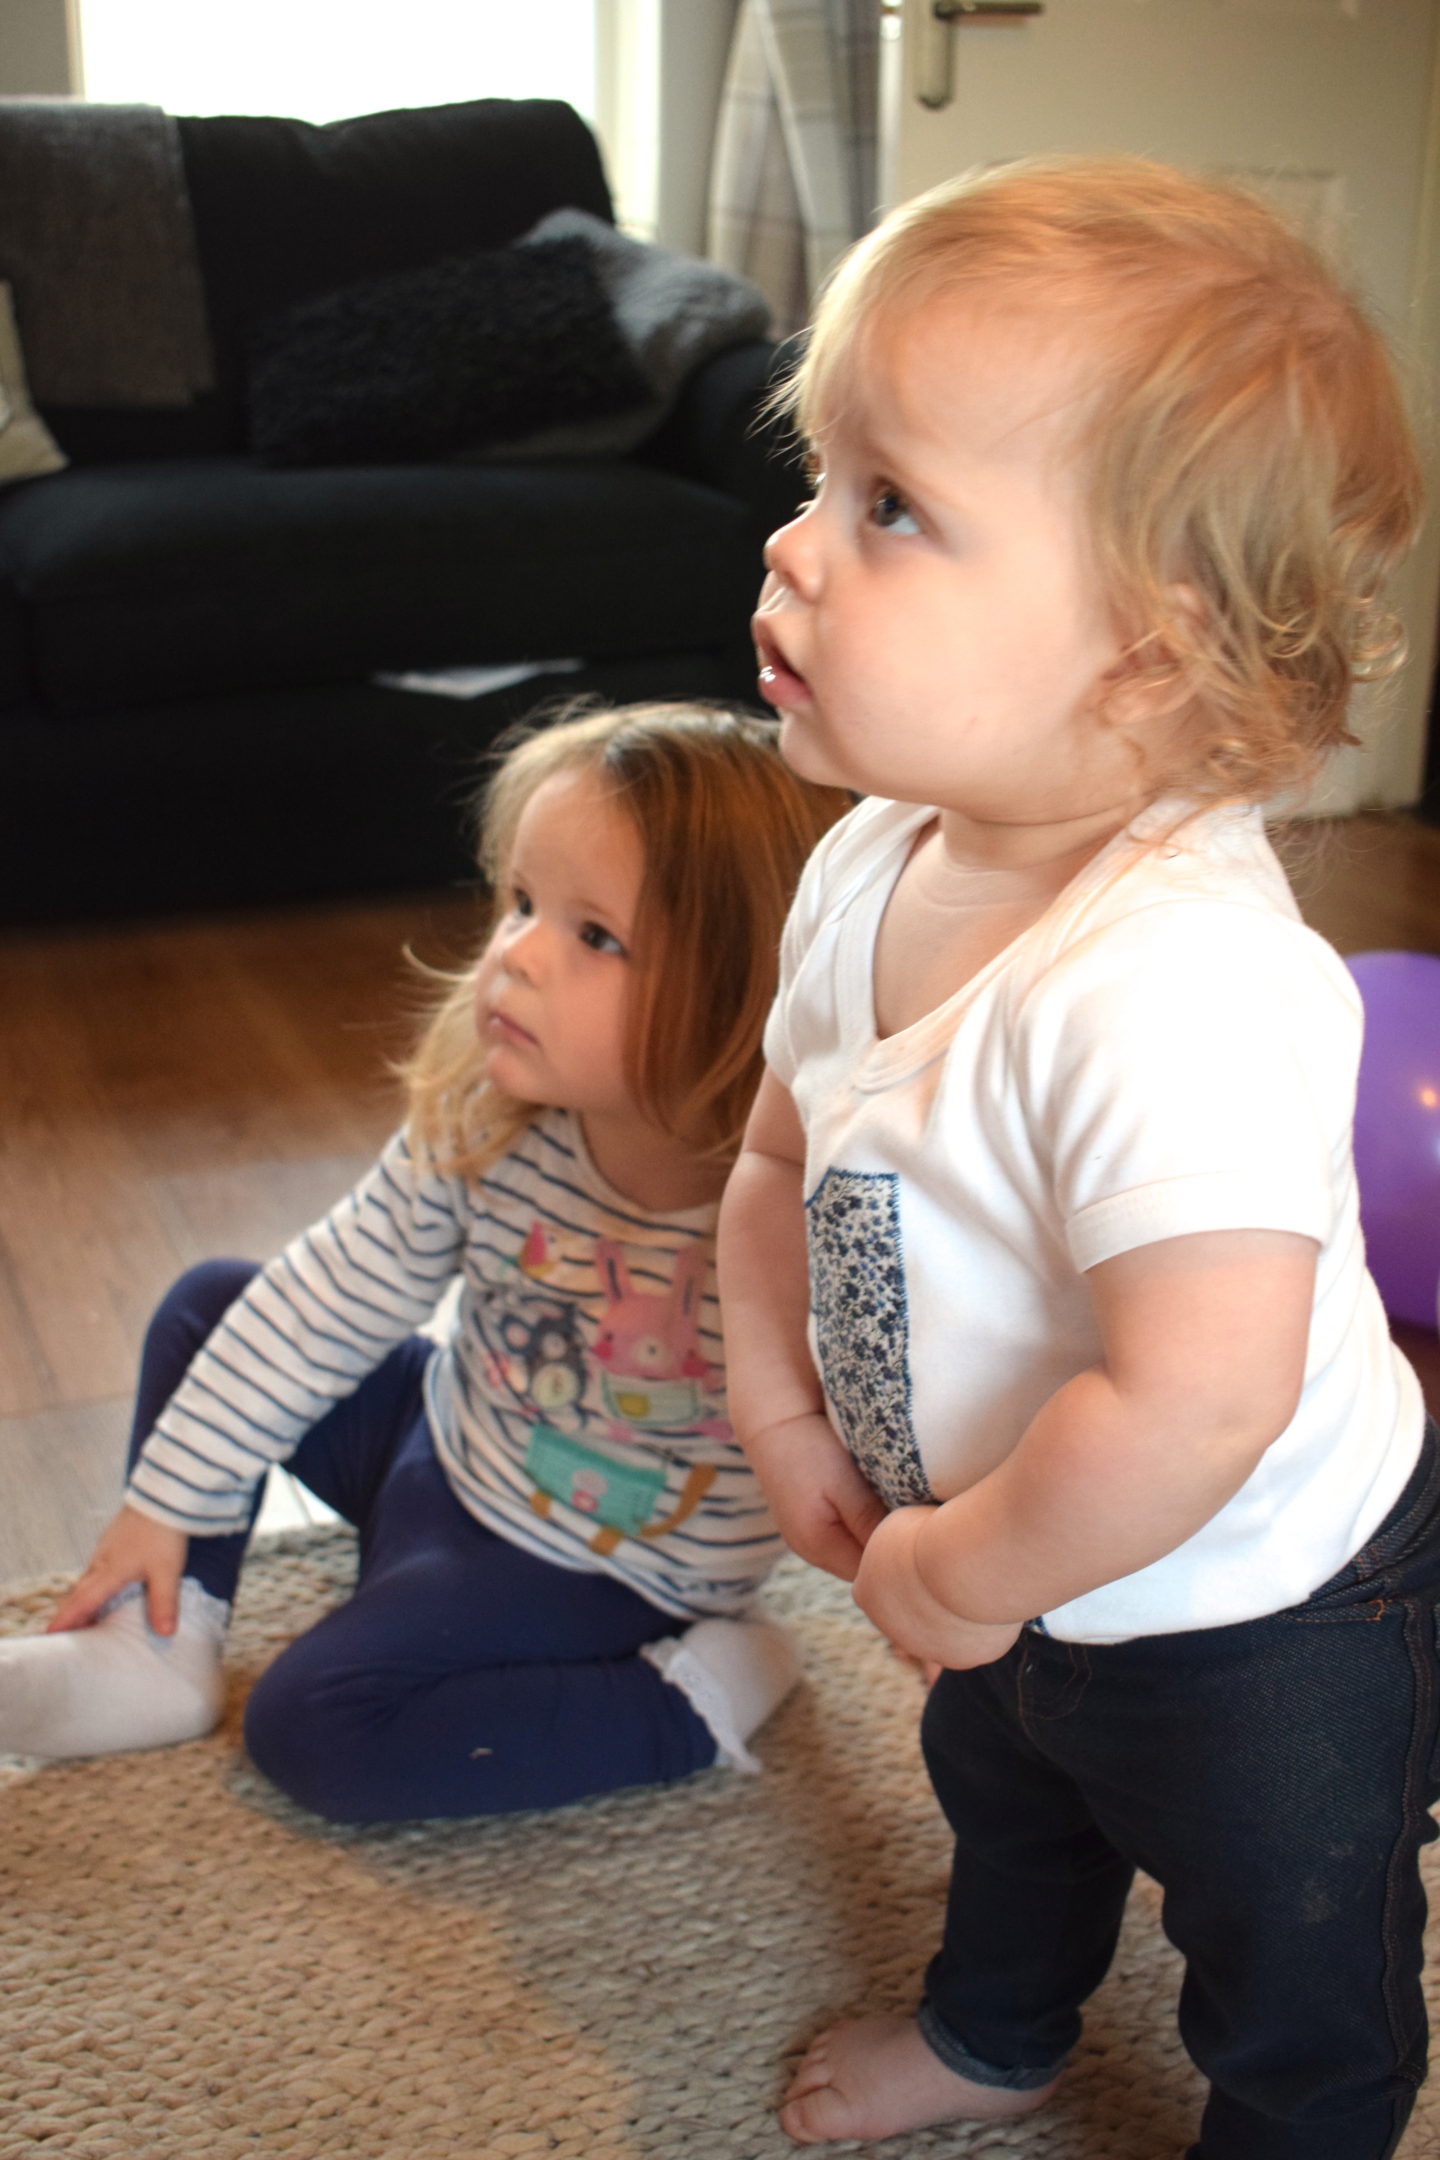 sisters, one standing, one sitting on the floor, watching TV